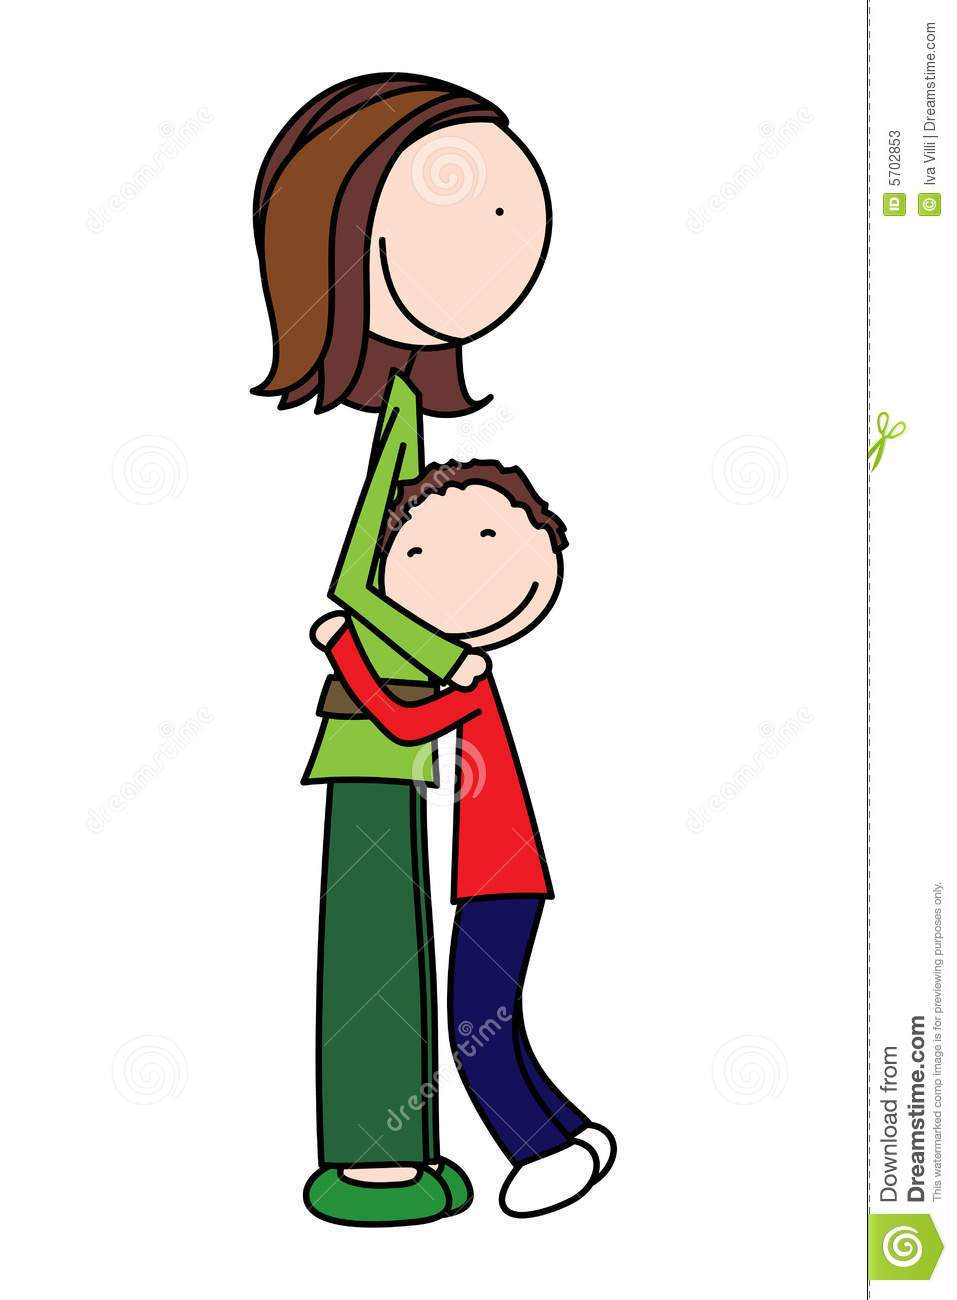 Mom hugging son clipart 1 » Clipart Portal.